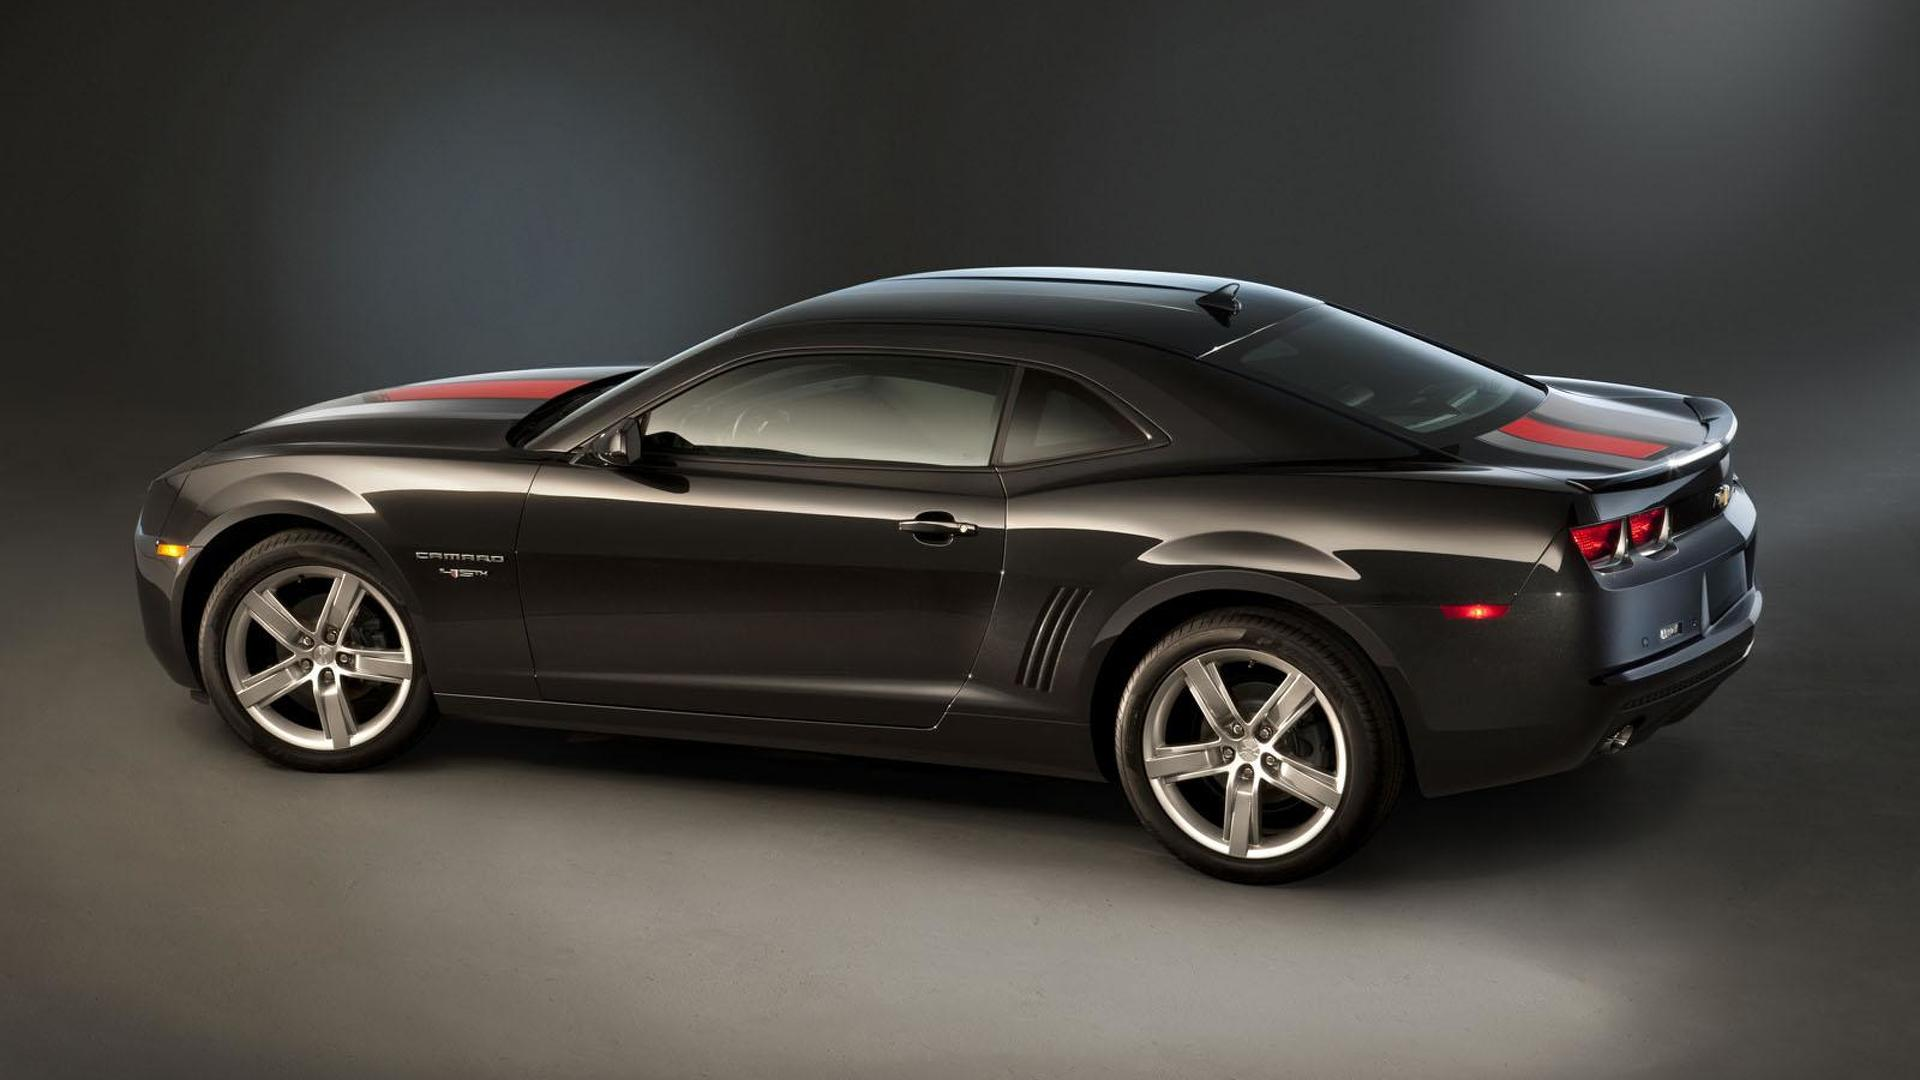 Chevrolet Camaro returns to the UK